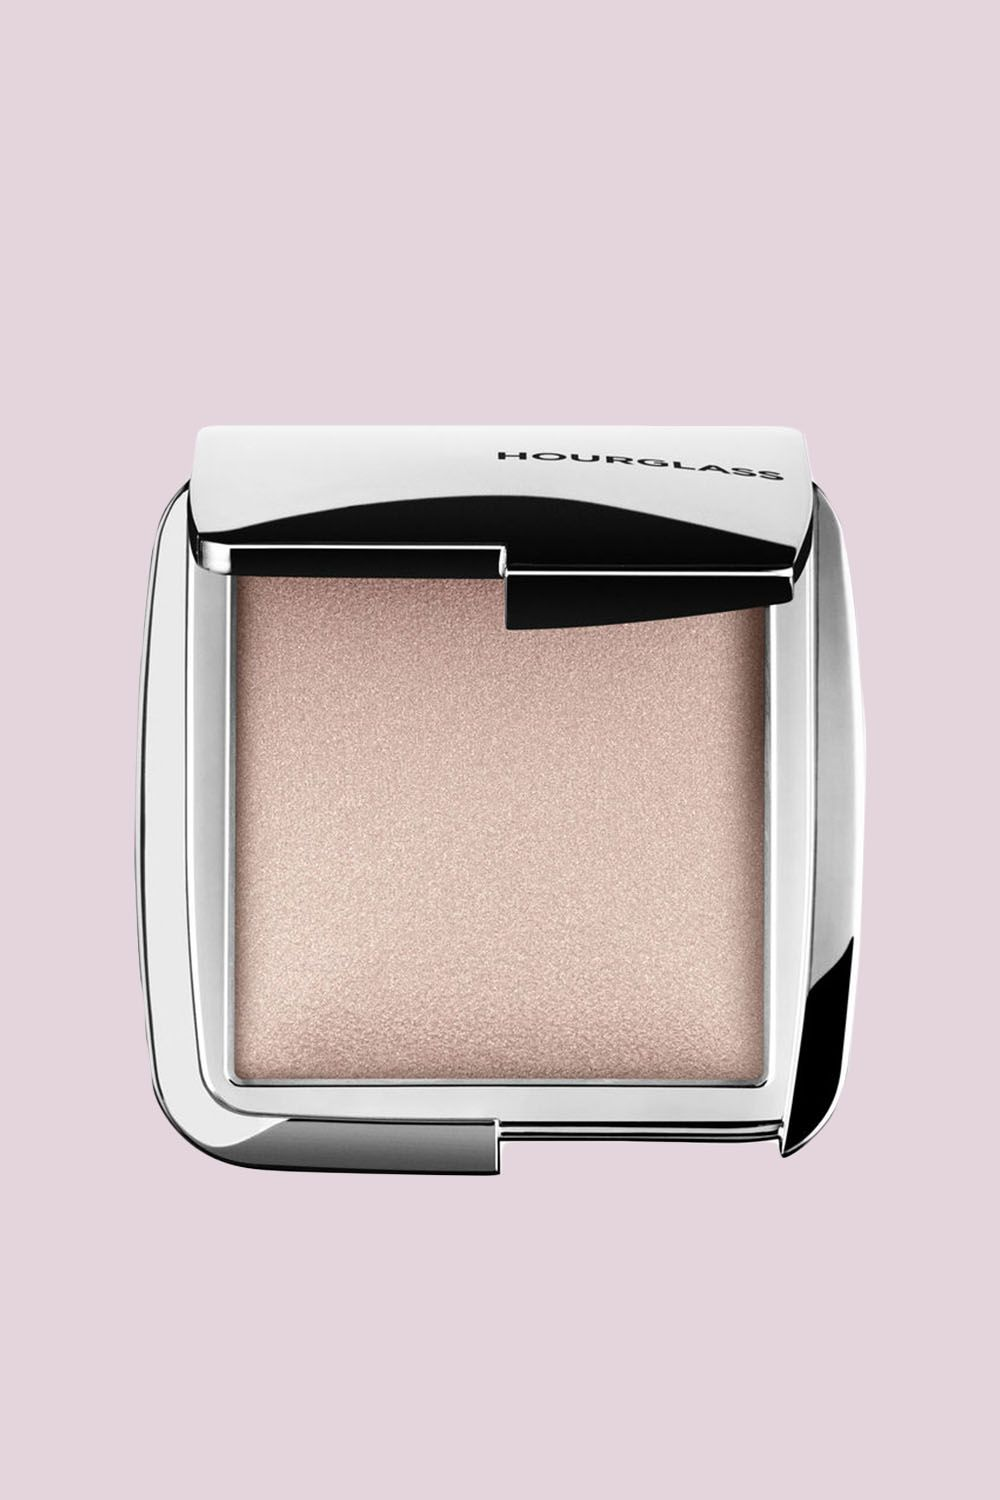 "<p>The brand that perfected filter-free skin has four new soft strobing powders (like Iridescent Light, pictured) begging for a moment at après ski, if you catch our drift. <strong data-redactor-tag=""strong"" data-verified=""redactor"">Editors' Note:</strong> The ultra-fine micro pearl particles practically melt into the skin. It's glorious.</p>  <p>Hourglass Ambient Strobe Lighting Powder, $38; <a href=""http://bit.ly/2gxxZjK"" target=""_blank"" data-tracking-id=""recirc-text-link"">spacenk.com</a>.</p>"